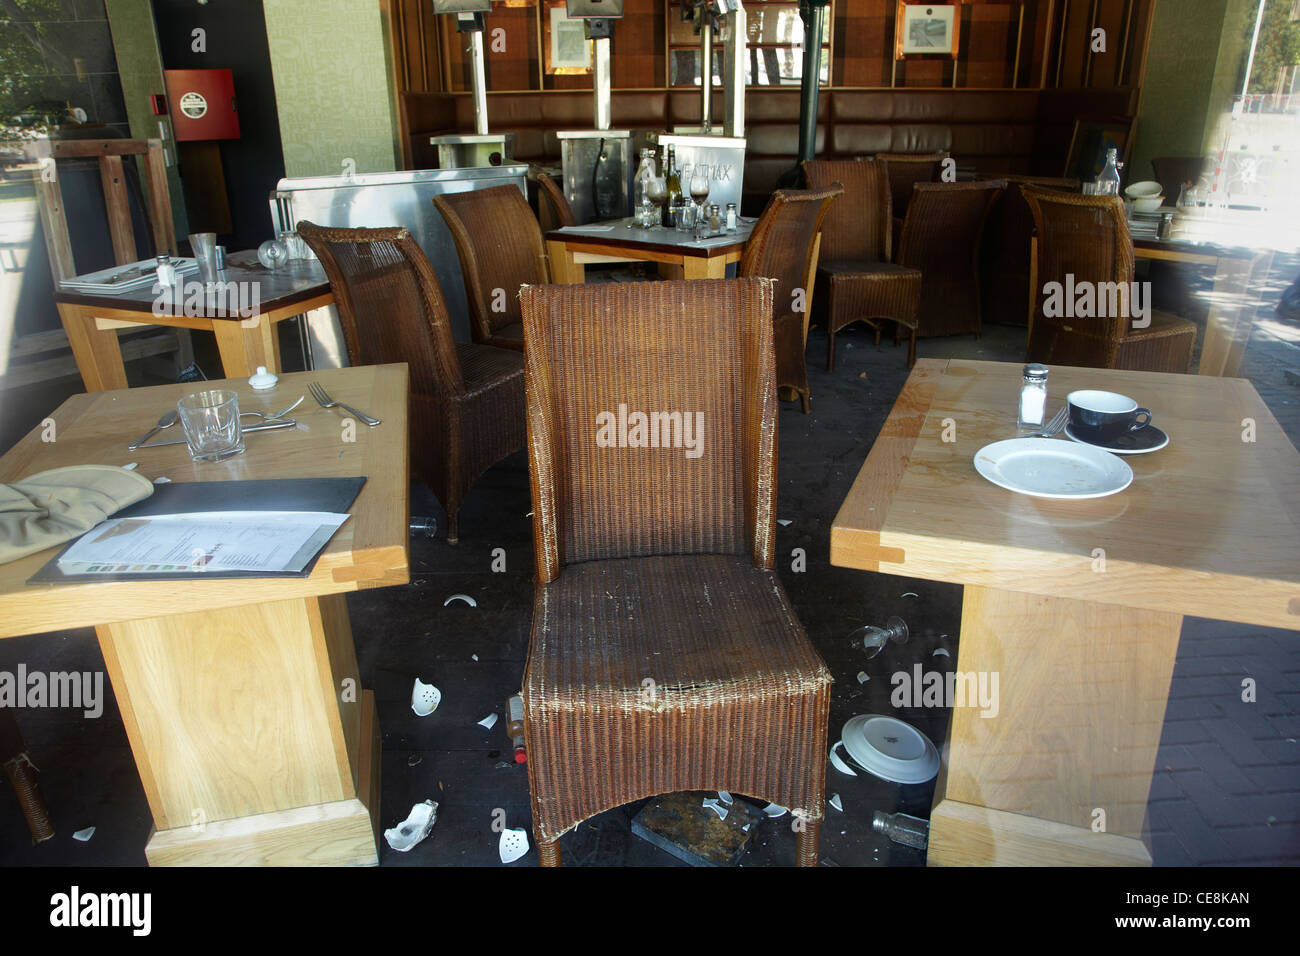 Broken plates at cafe, frozen in time after earthquake a year earlier, Christchurch, Canterbury, South Island, New - Stock Image